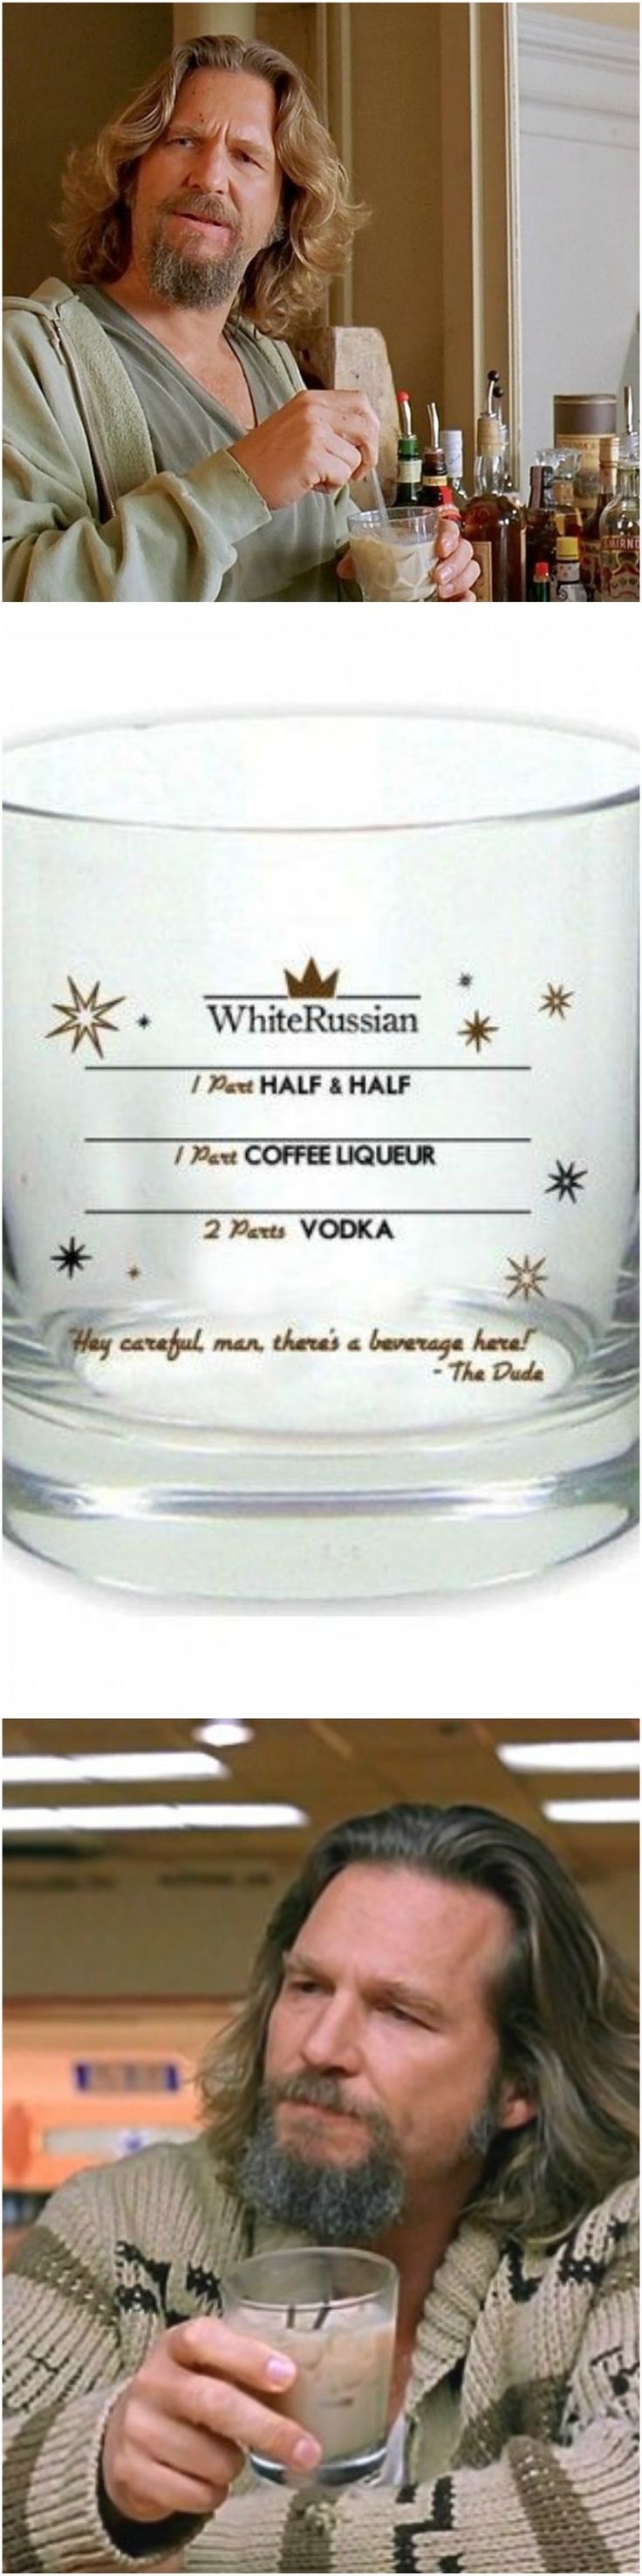 """Hey careful man! Theres a beverage here"" -the Dude. The Big Lebowski White Russian Recipe Rocks Glass. Great gift for the holidays"